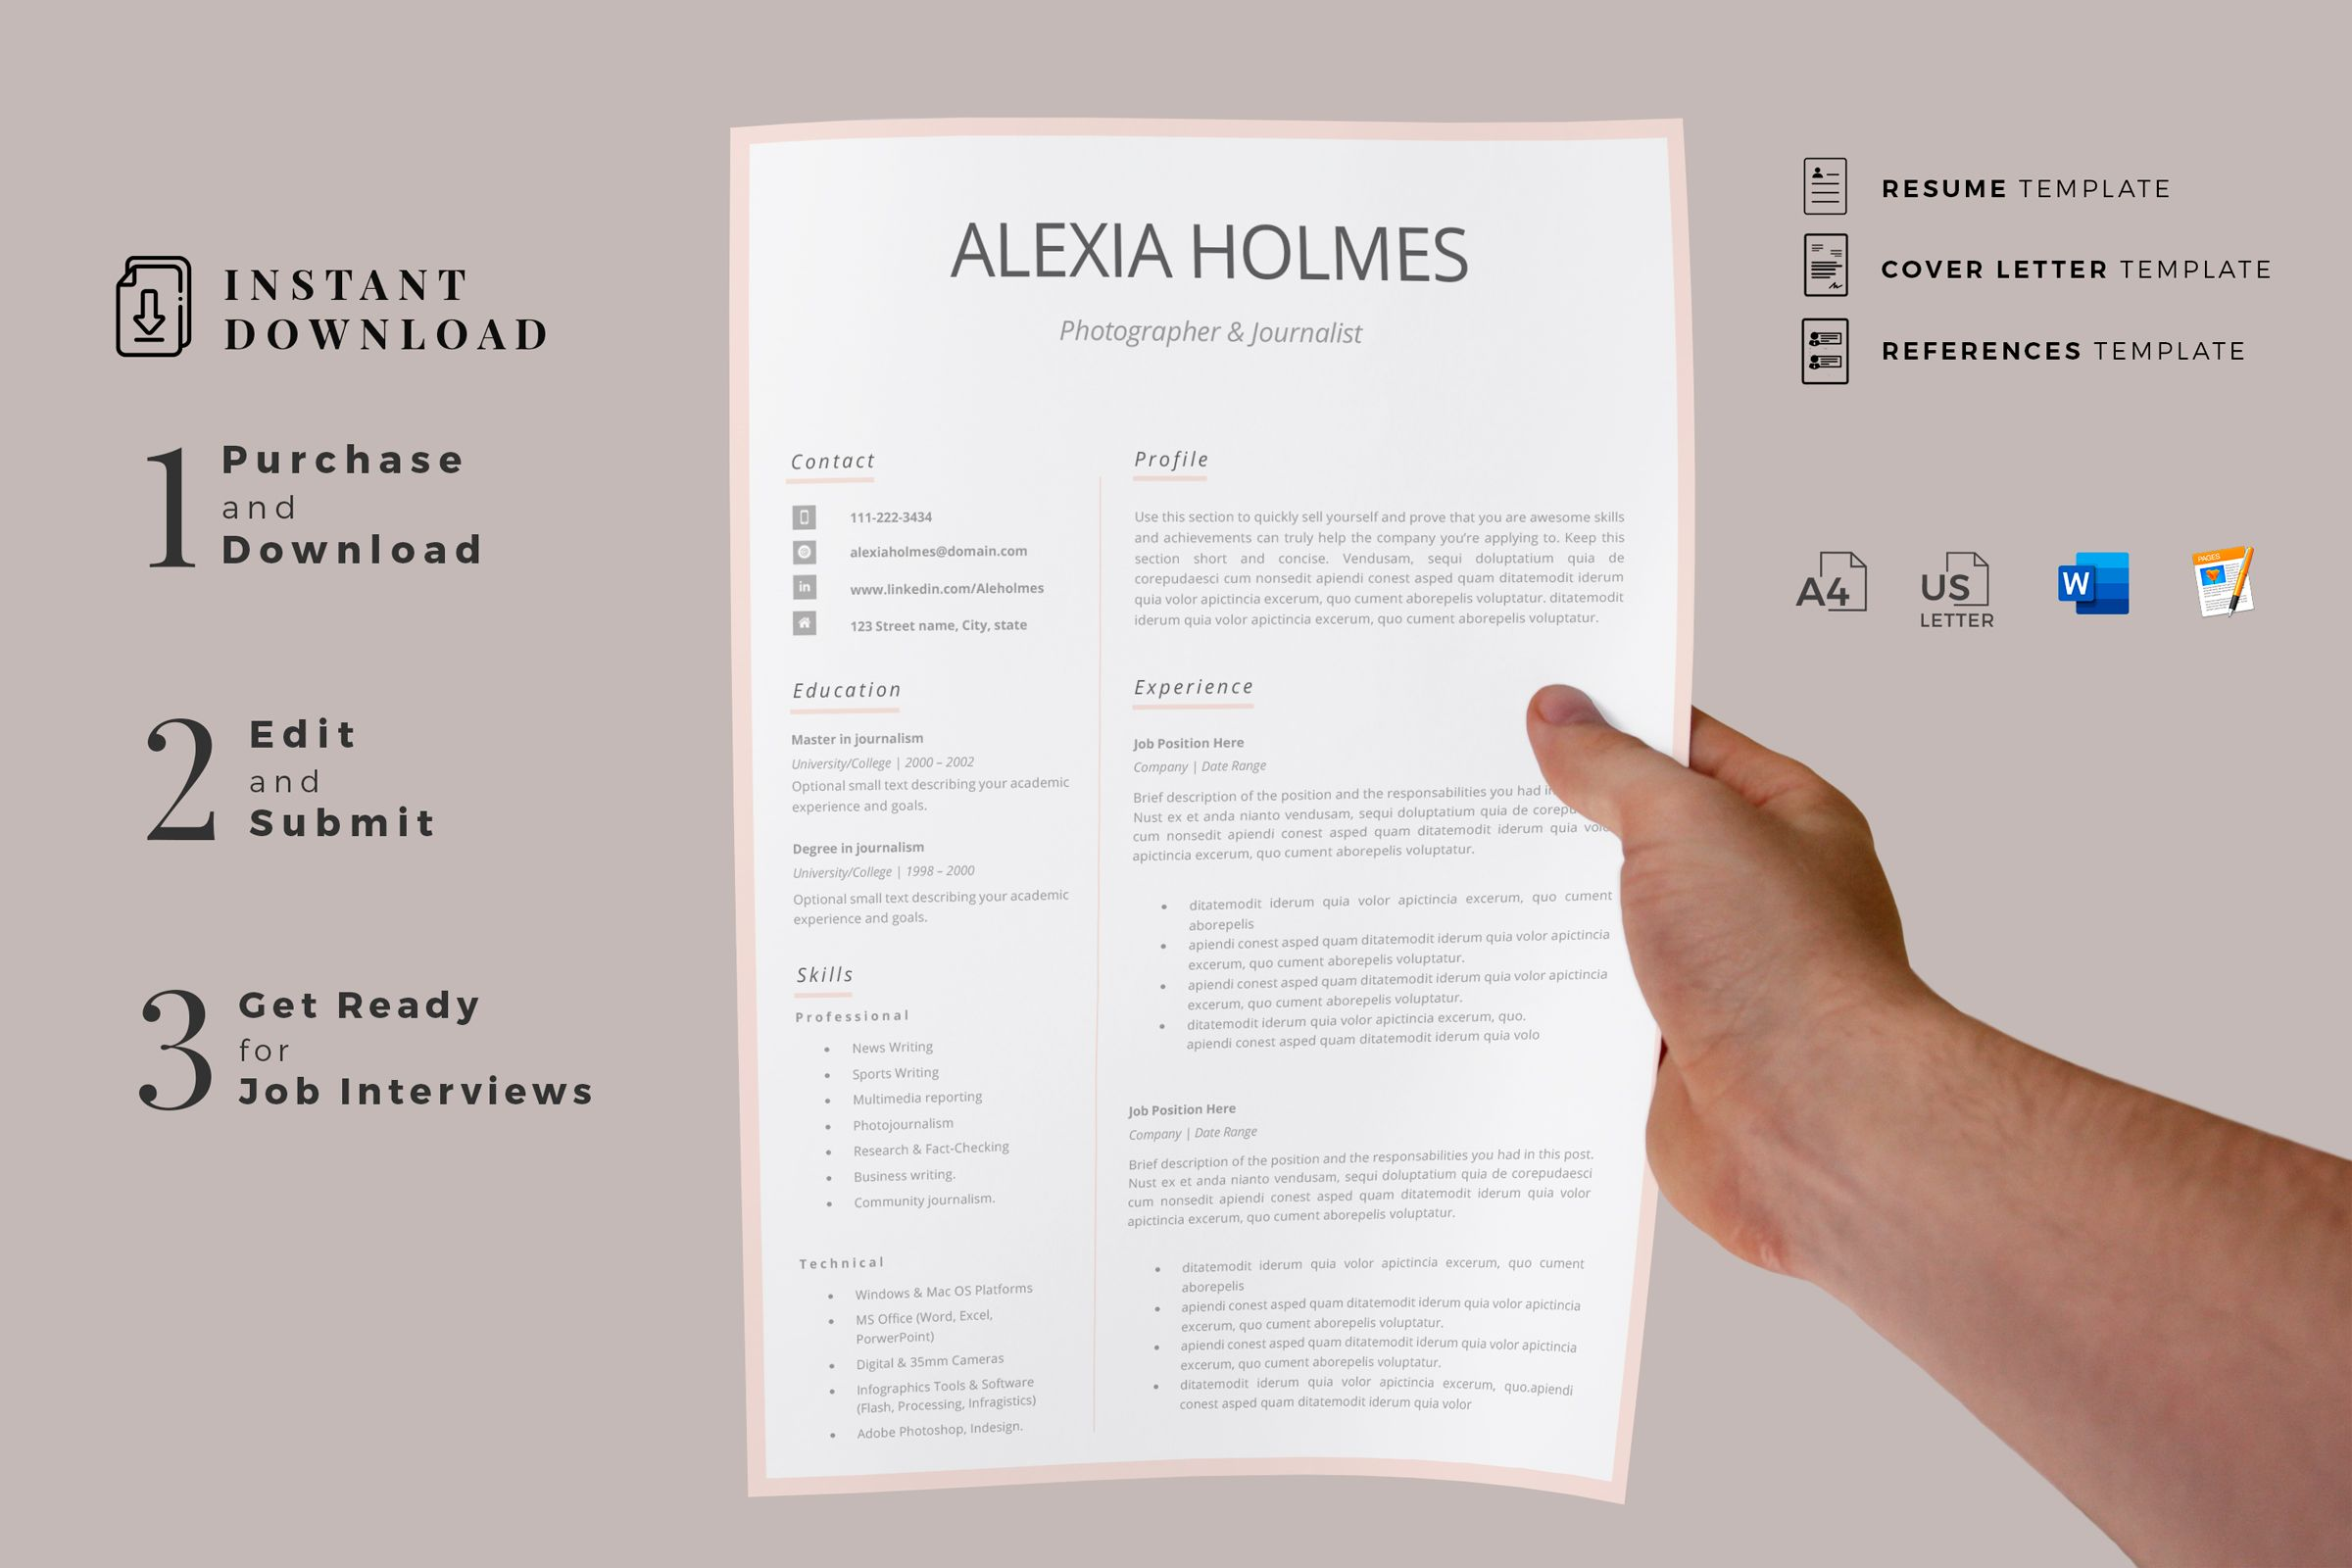 Creative Resume Templates For Ms Word And Mac Pages Professional Resume Templates And Matching Co Creative Resume Templates Modern Resume Design Resume Design